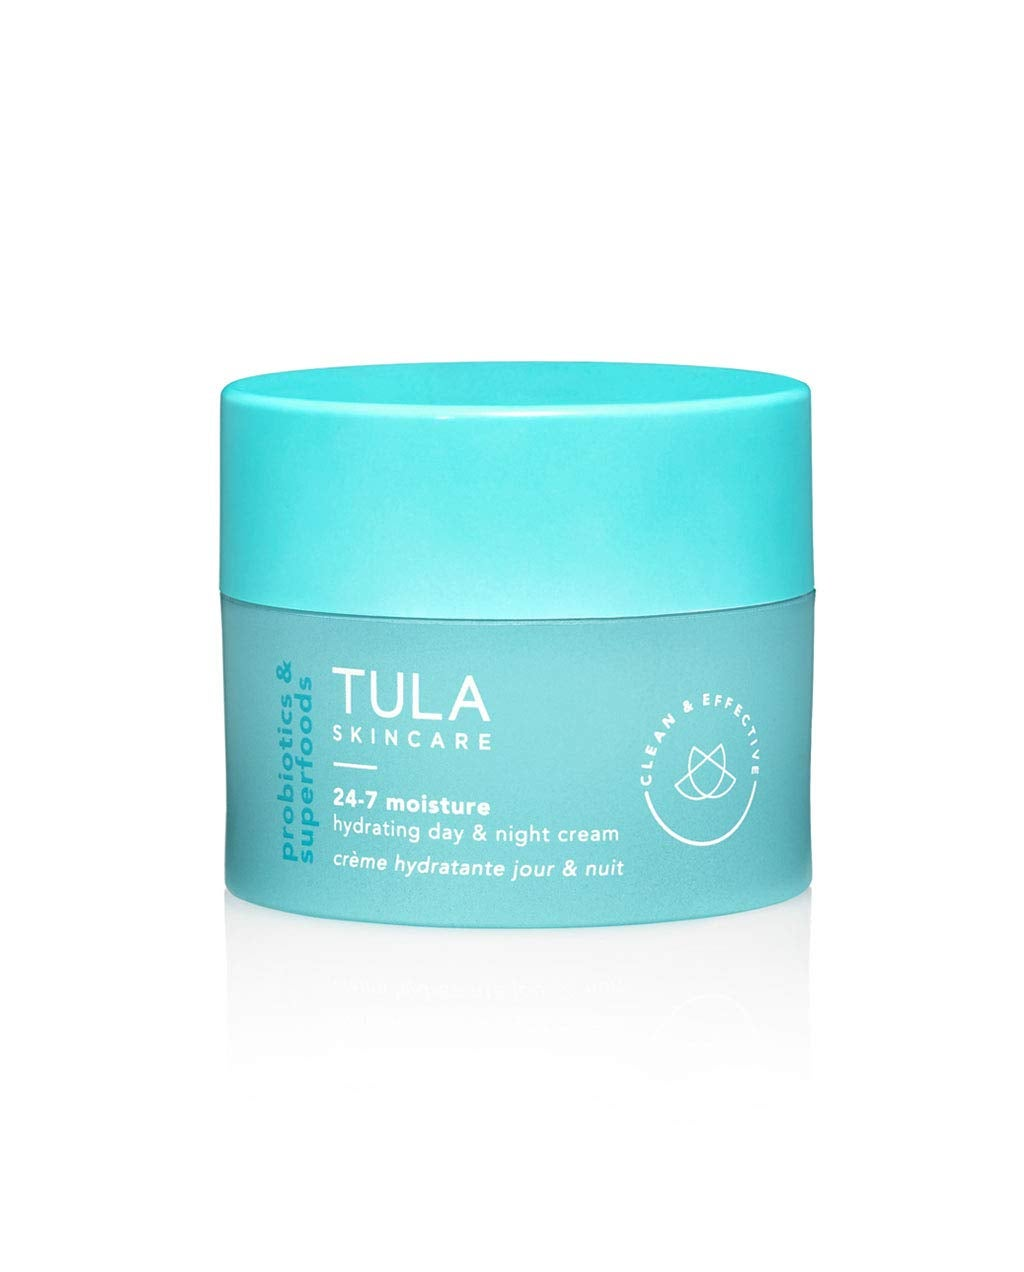 TULA Probiotic Skin Care 24-7 Moisture Hydrating Day and Night Cream | Moisturizer for Face, Ageless is the New Anti-Aging, Face Cream, Contains Watermelon Fruit and Blueberry Extract